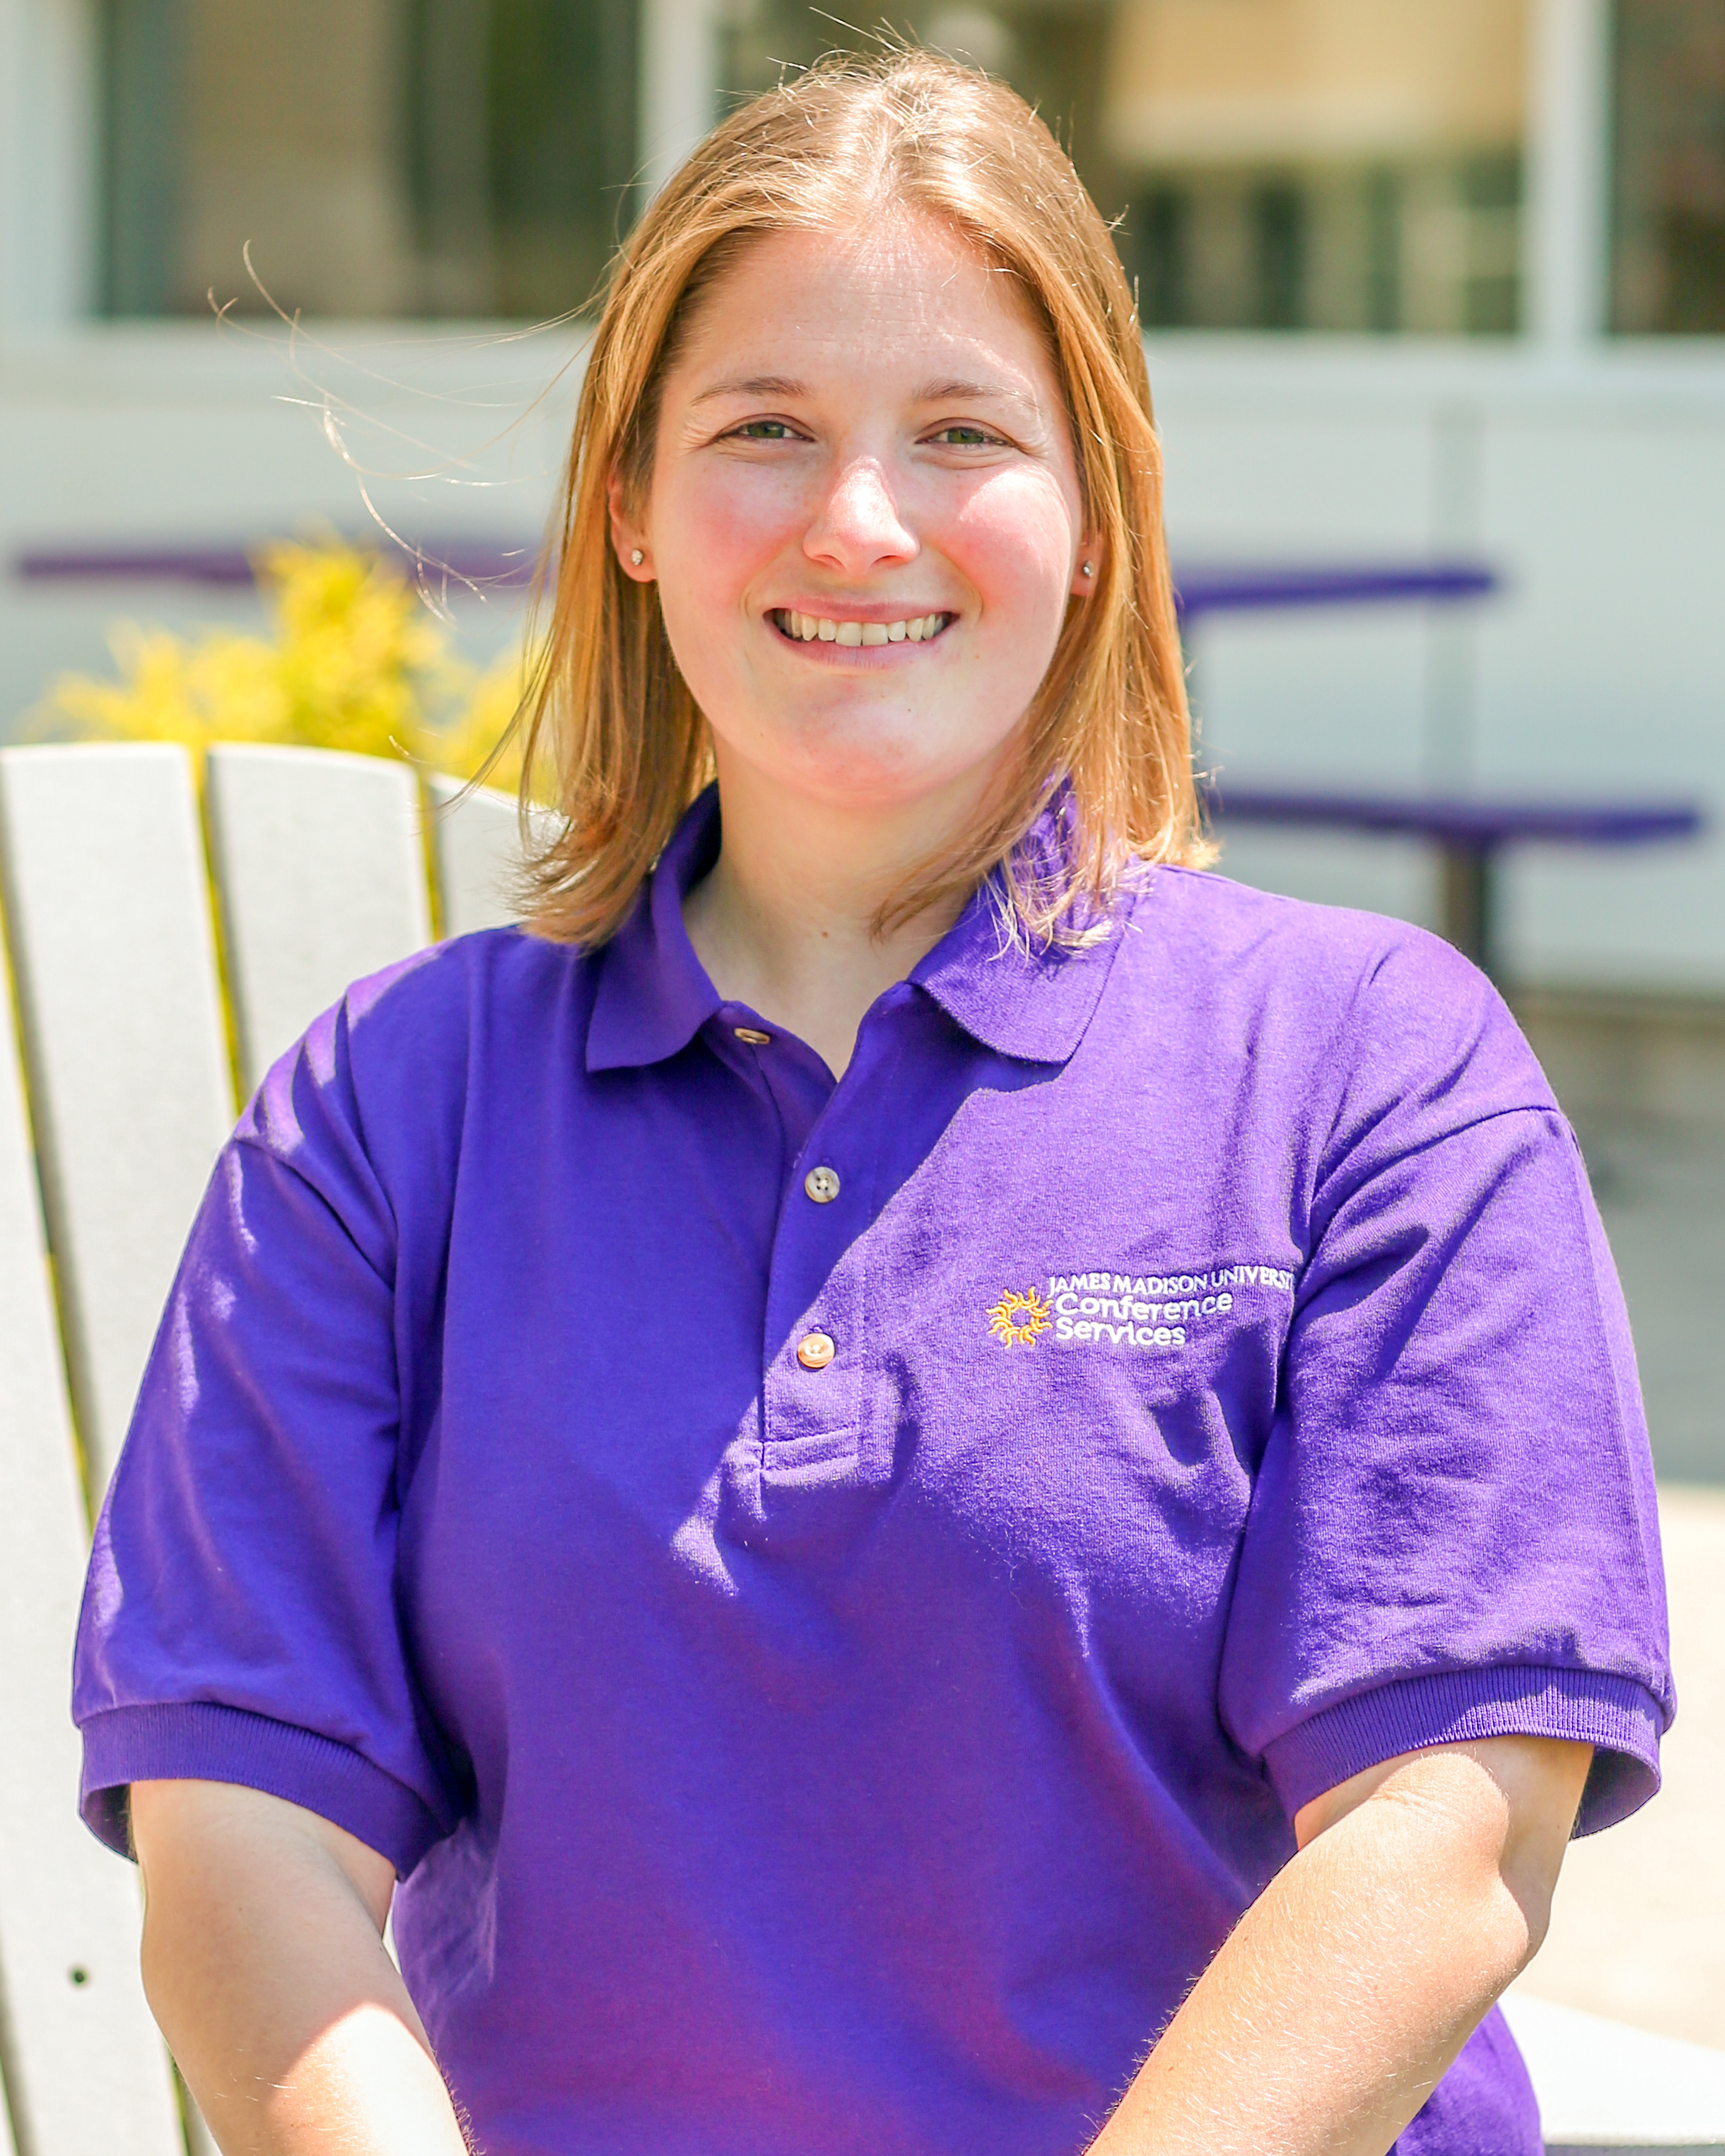 Photo of Brittany Rood, Summer Staff